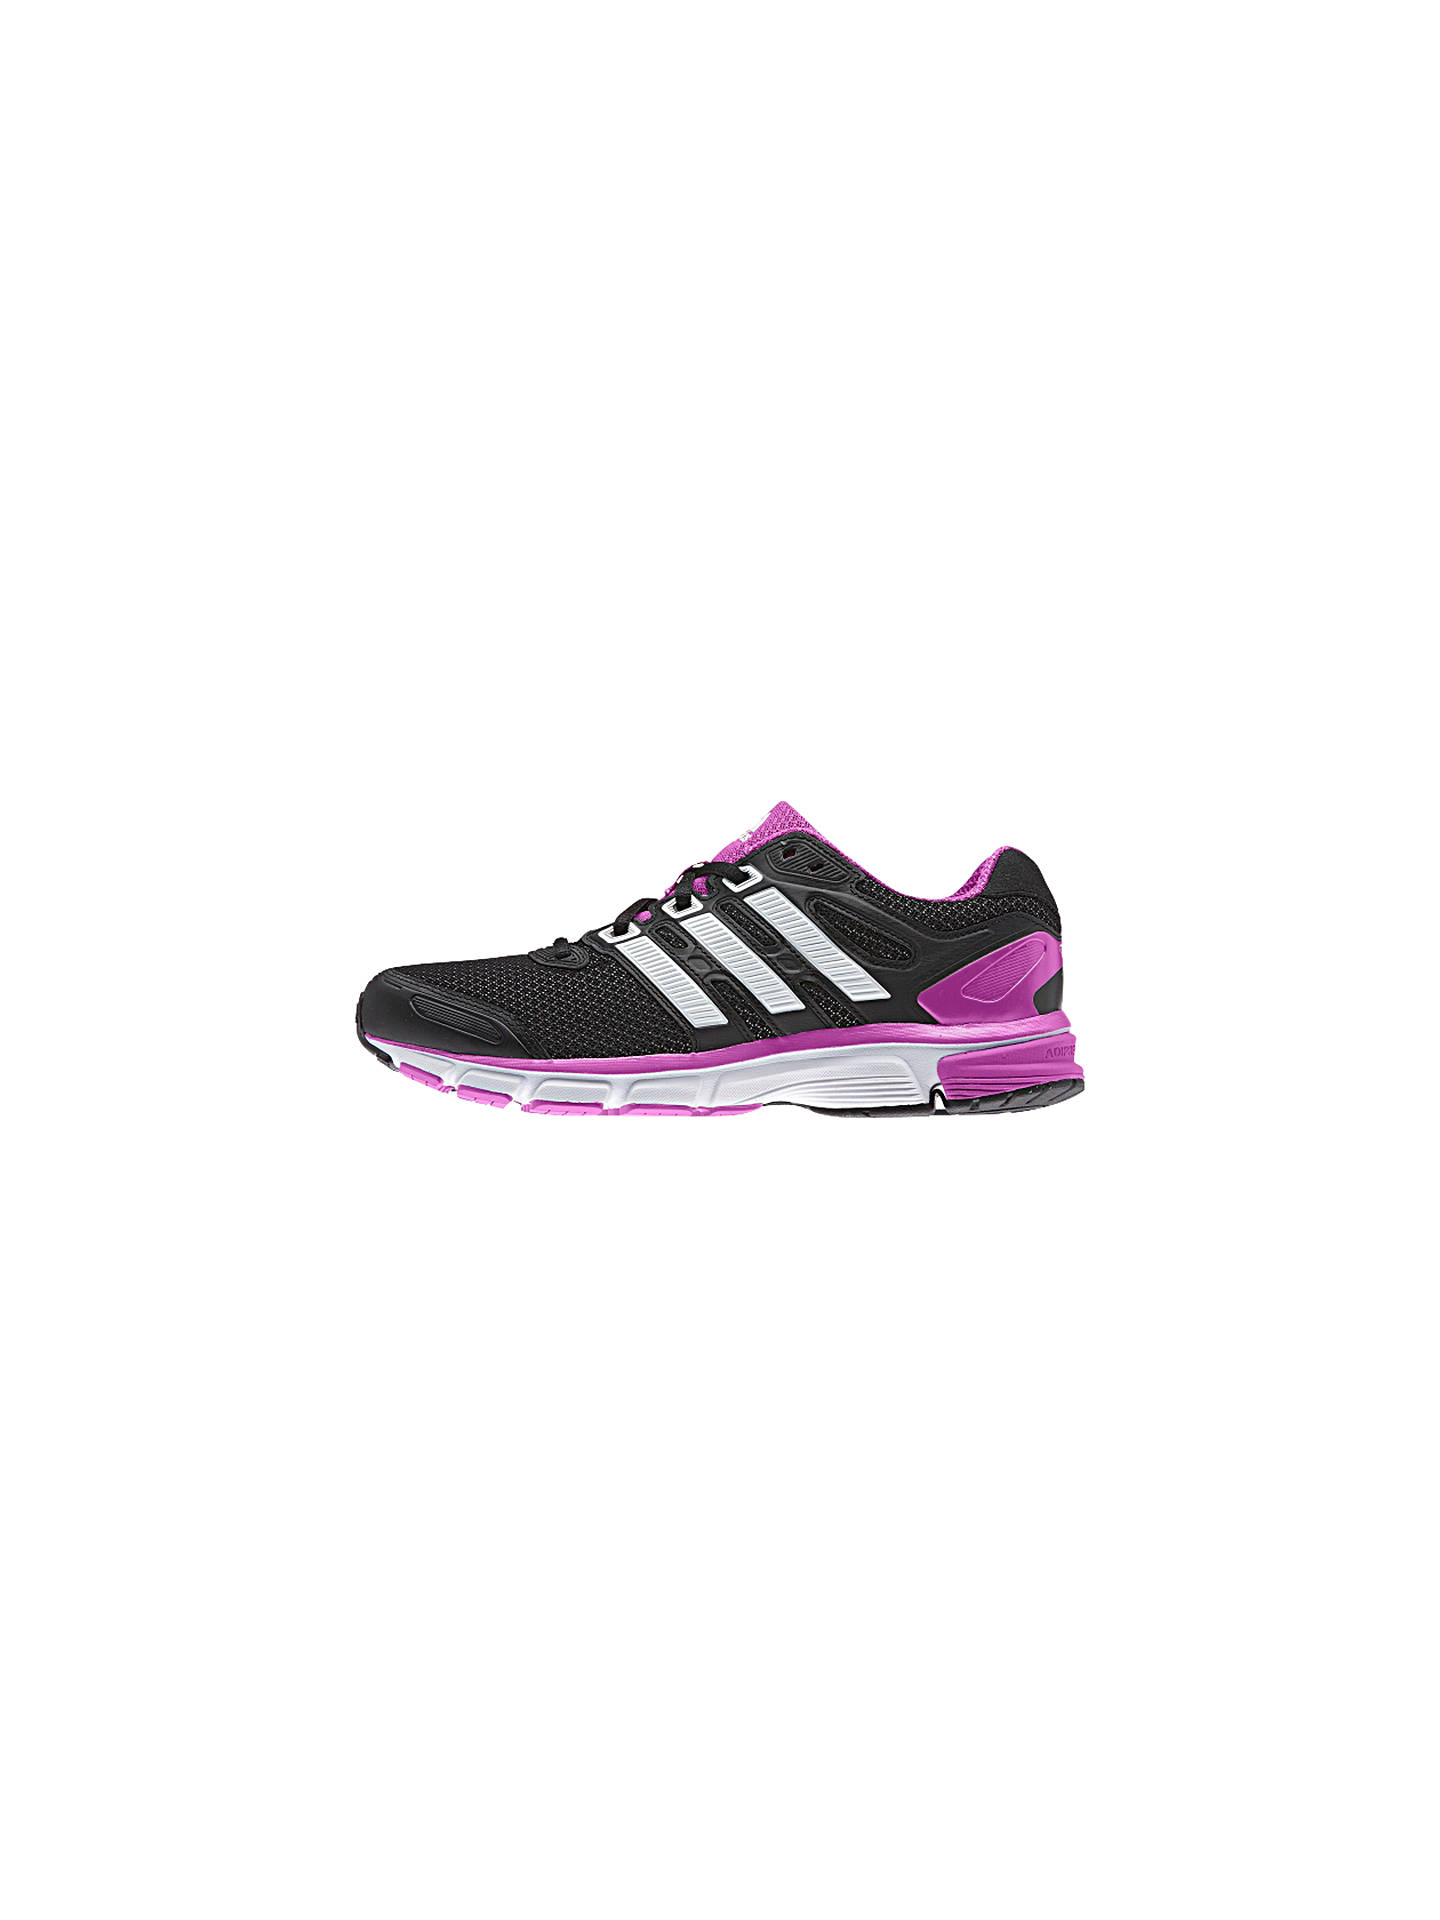 Adidas Nova Stability Women's Running Shoes, BlackPurple at